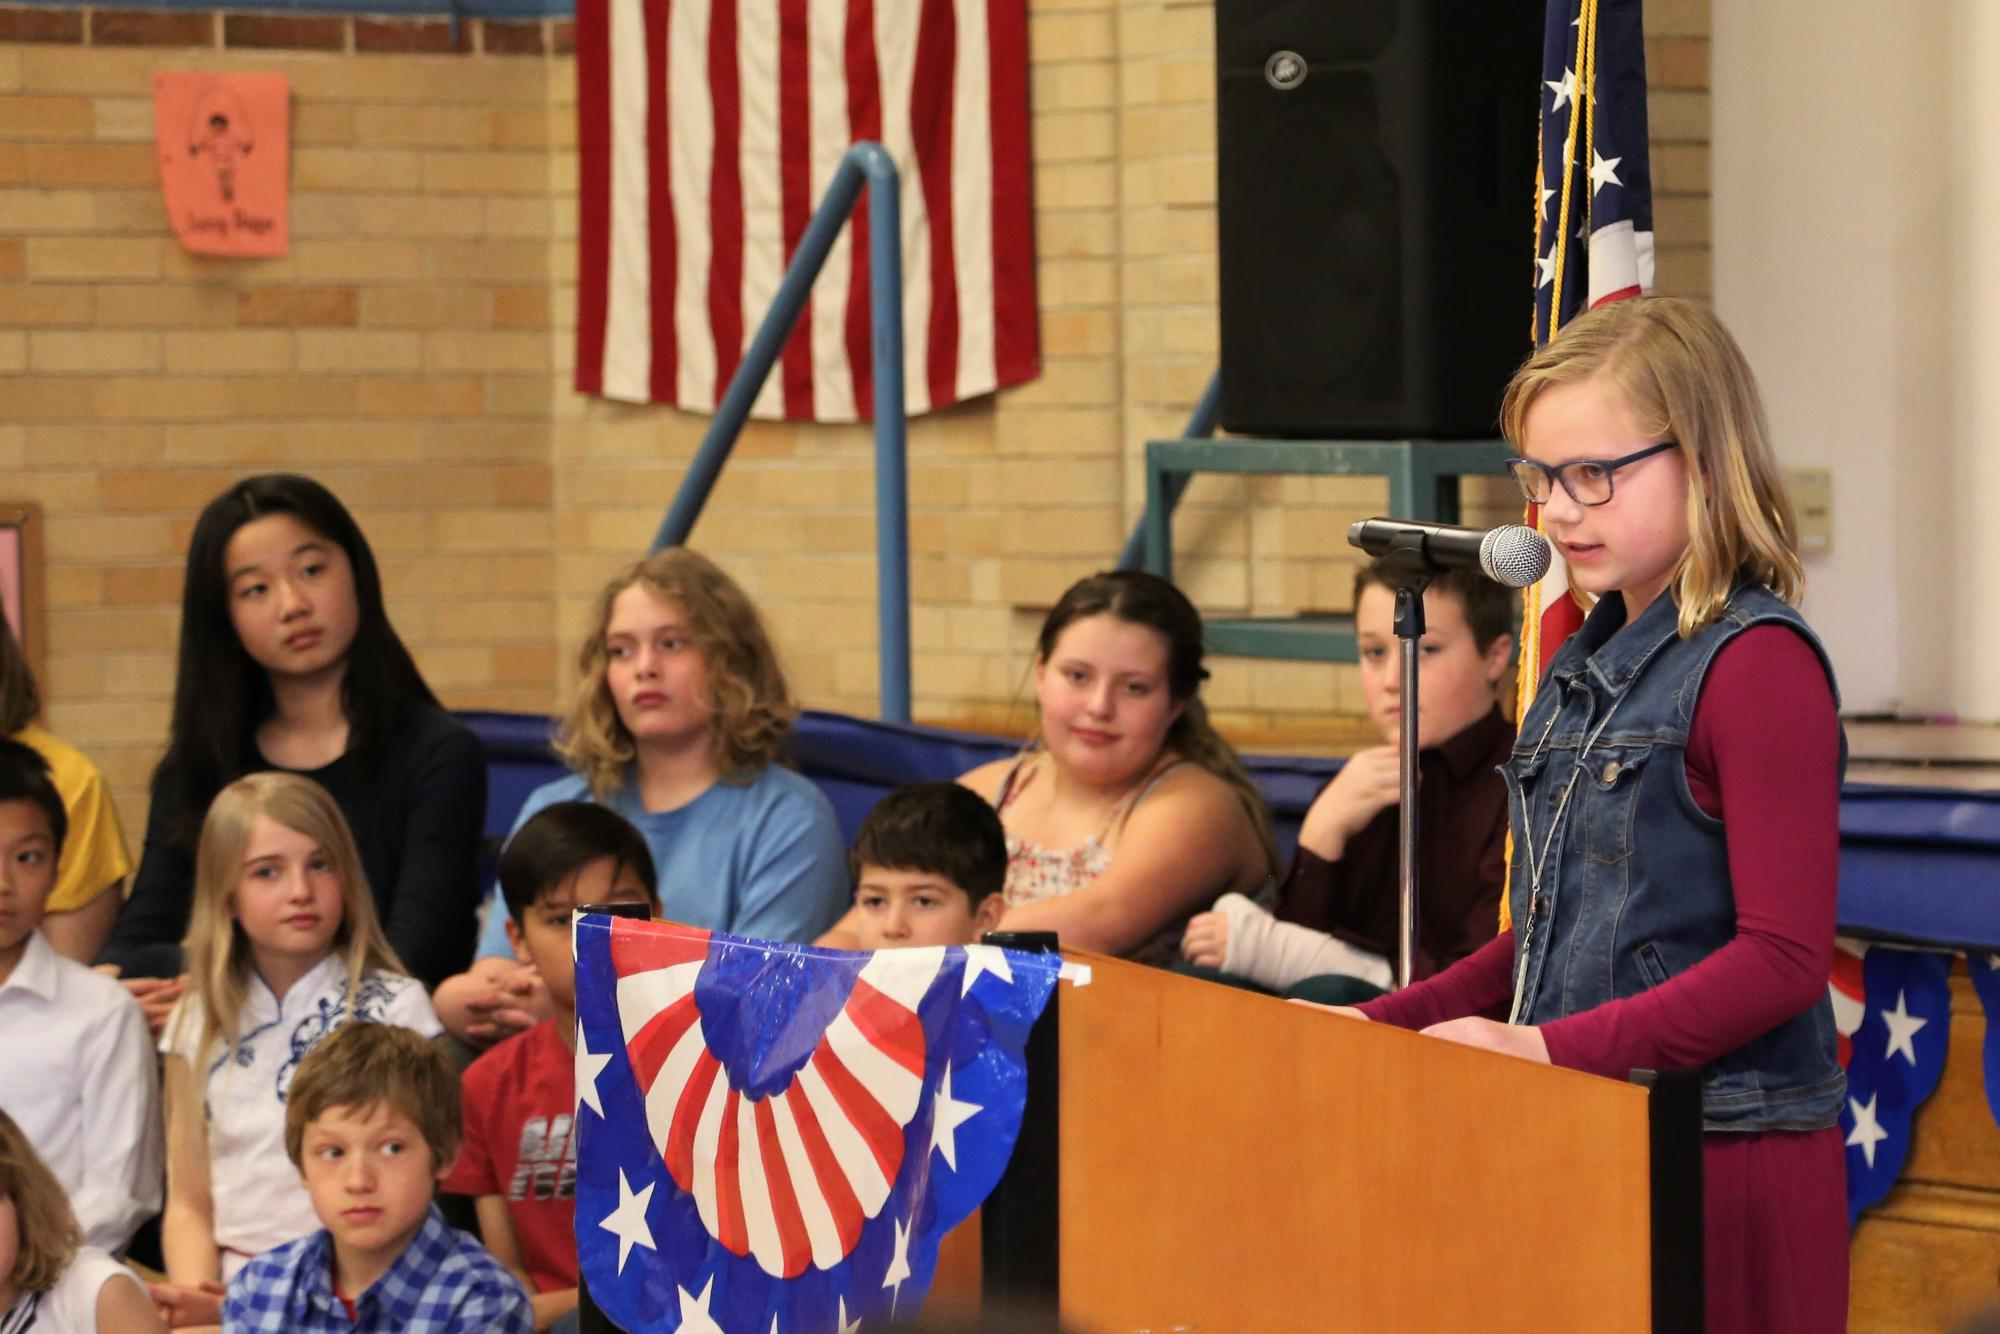 Fifth-grader Harper Skejerseth spoke to soon to be new citizens.